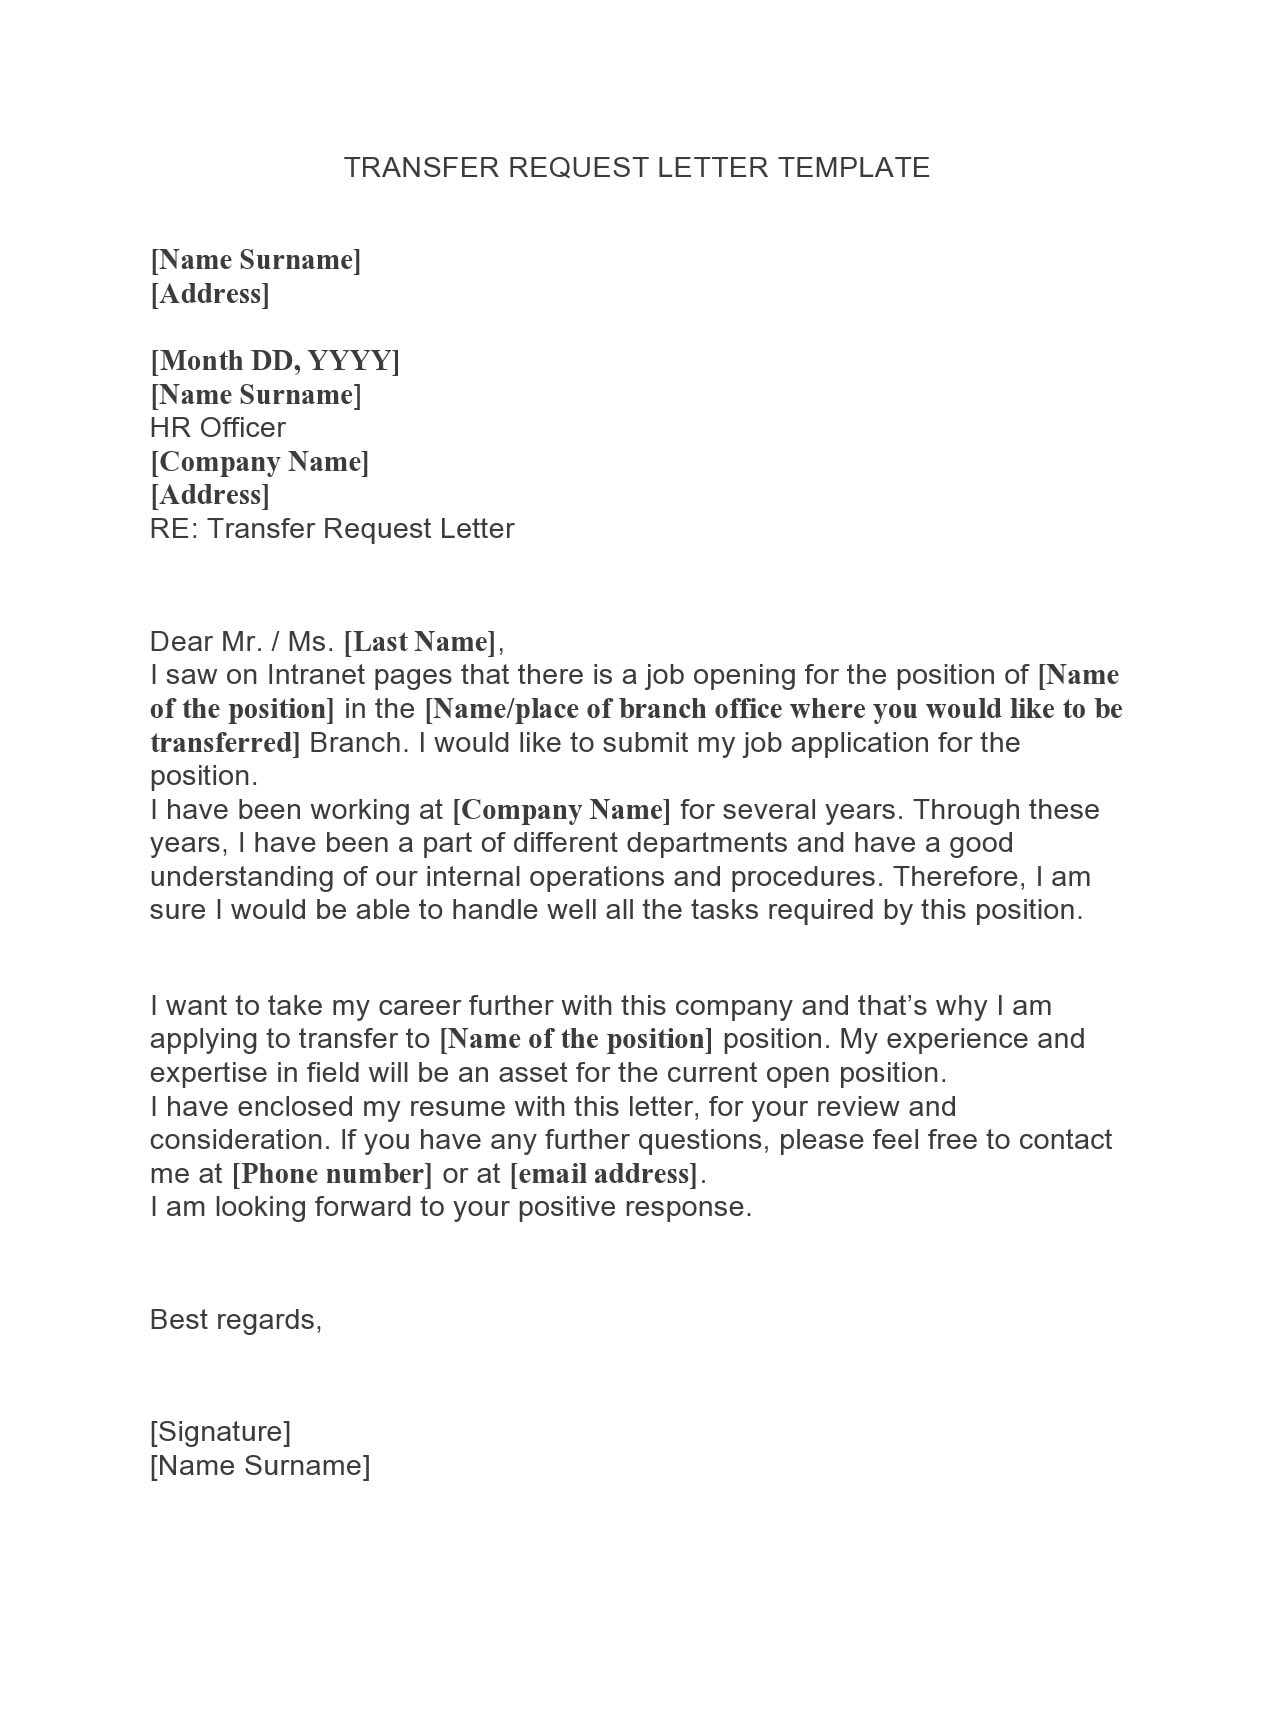 Transfer Request Letter Example from templatearchive.com